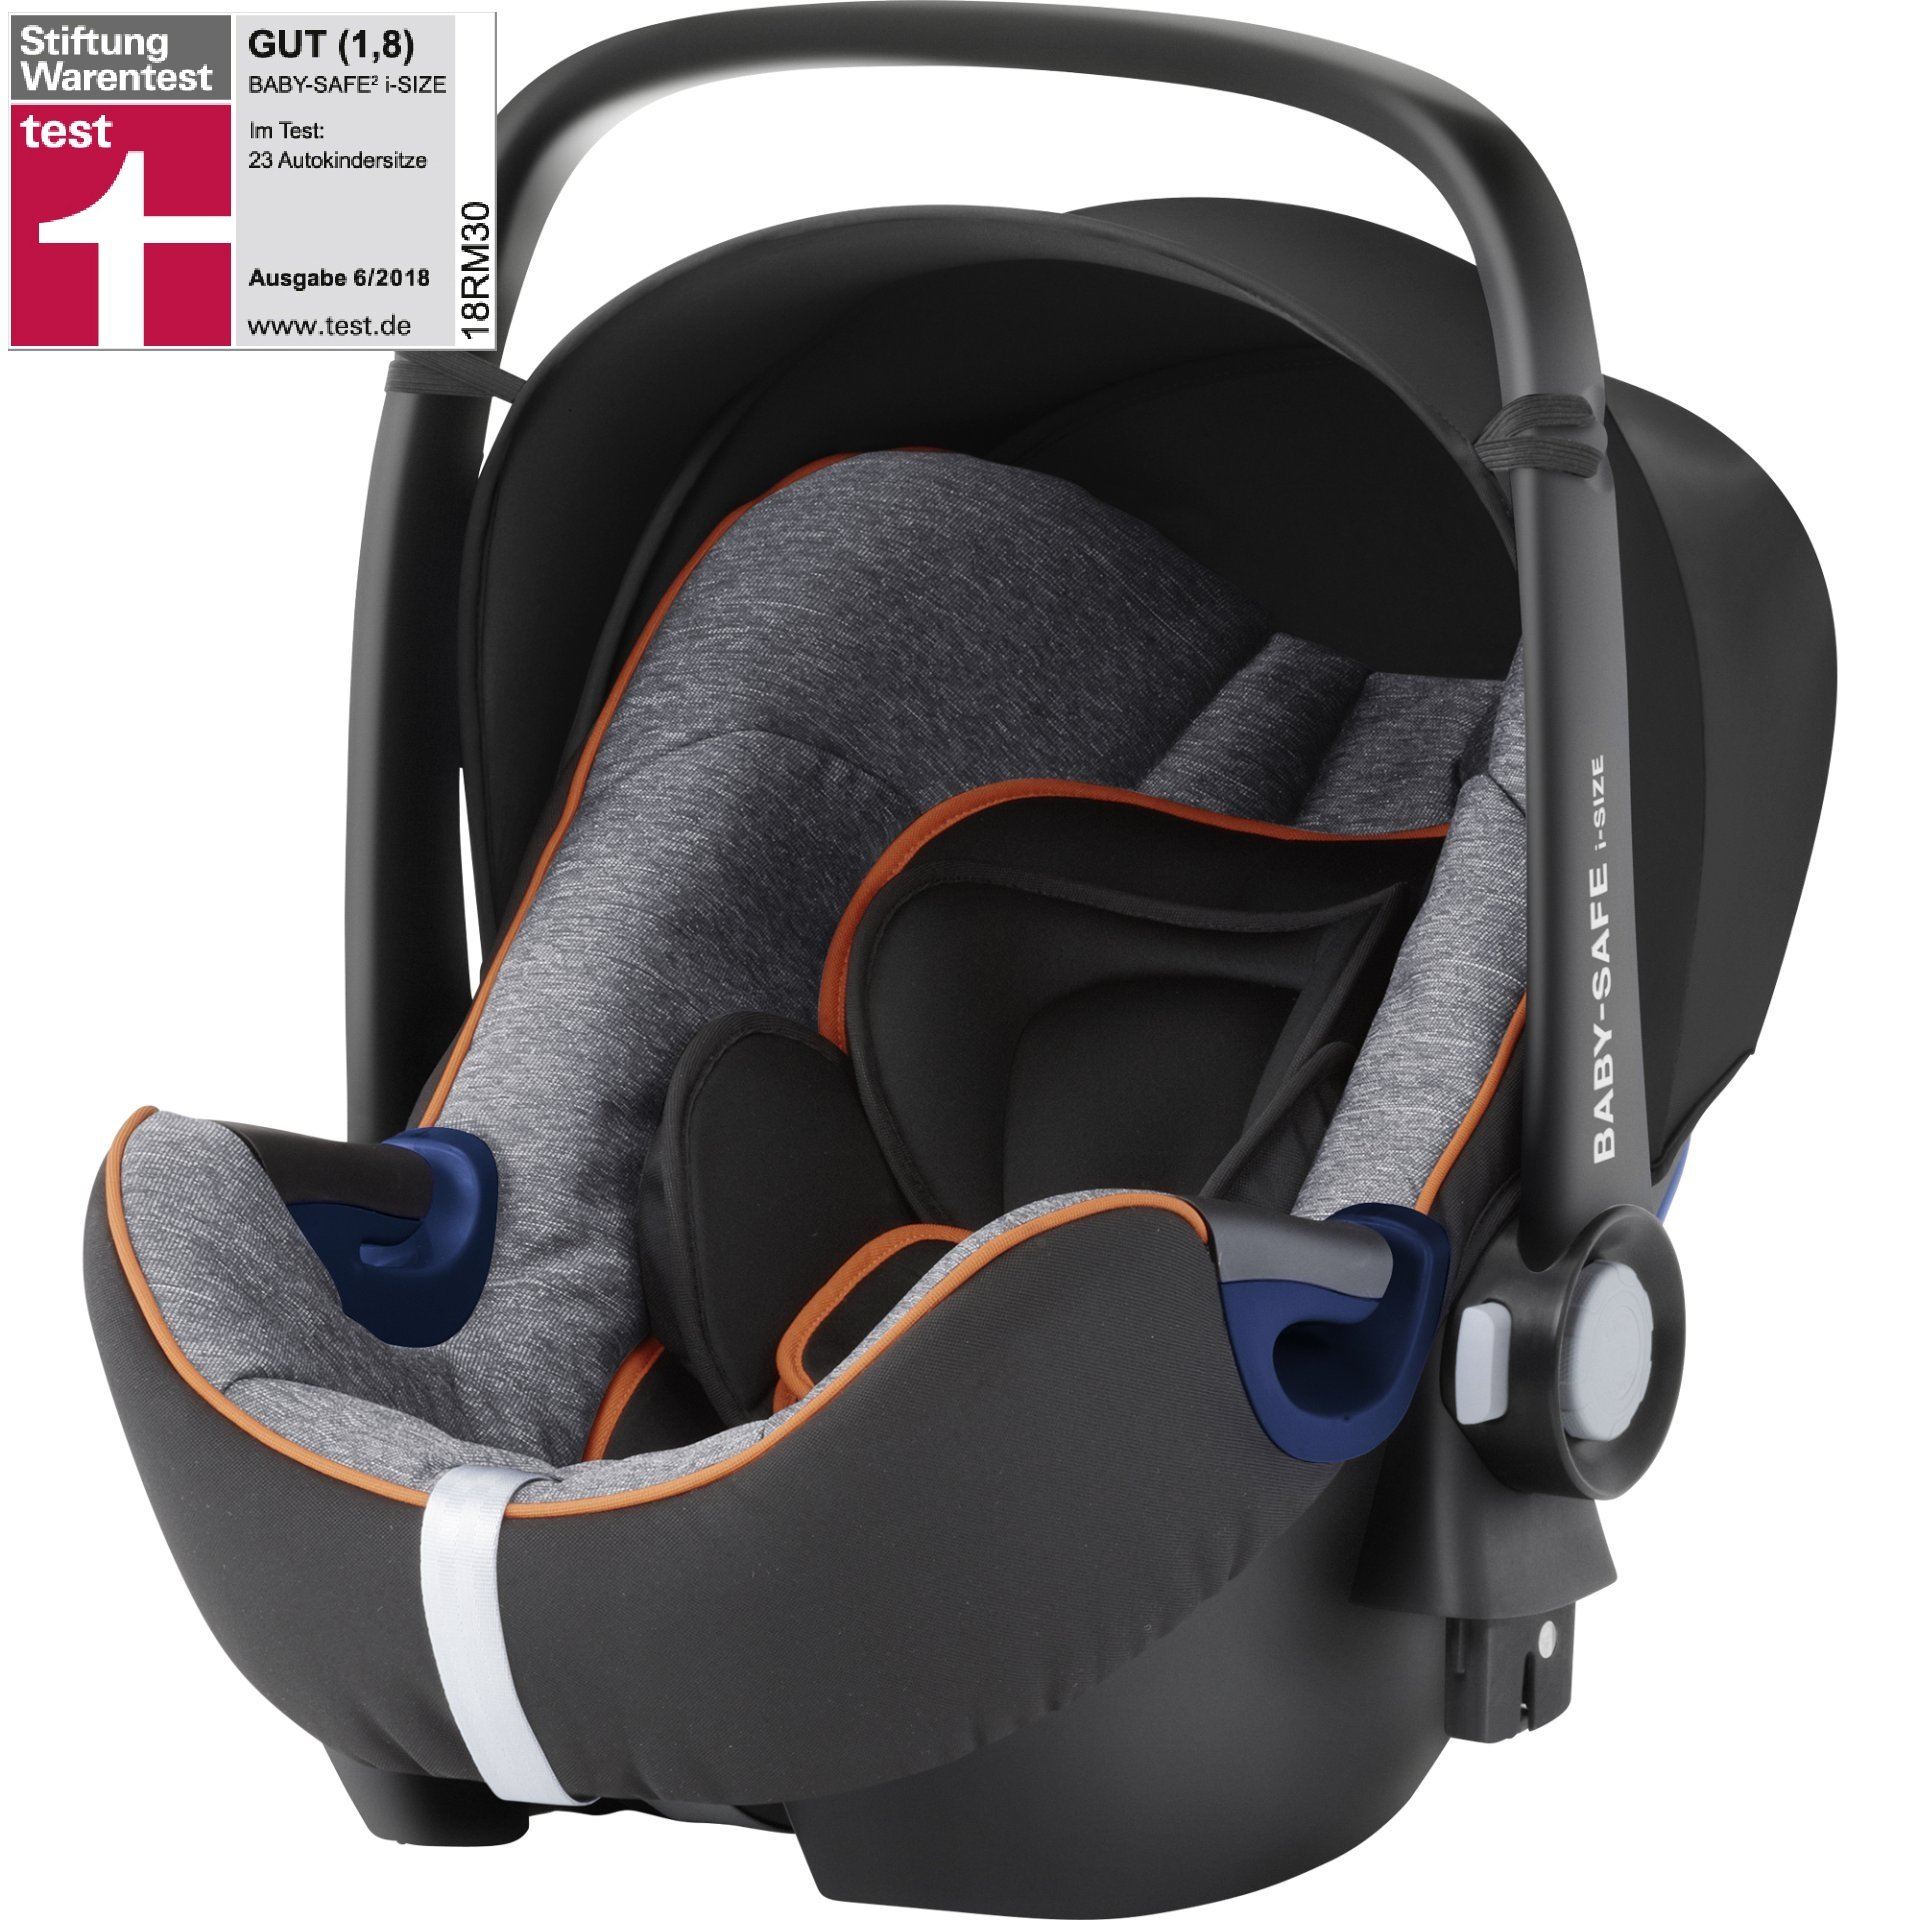 britax r mer infant car seat baby safe 2 i size 2018 black. Black Bedroom Furniture Sets. Home Design Ideas